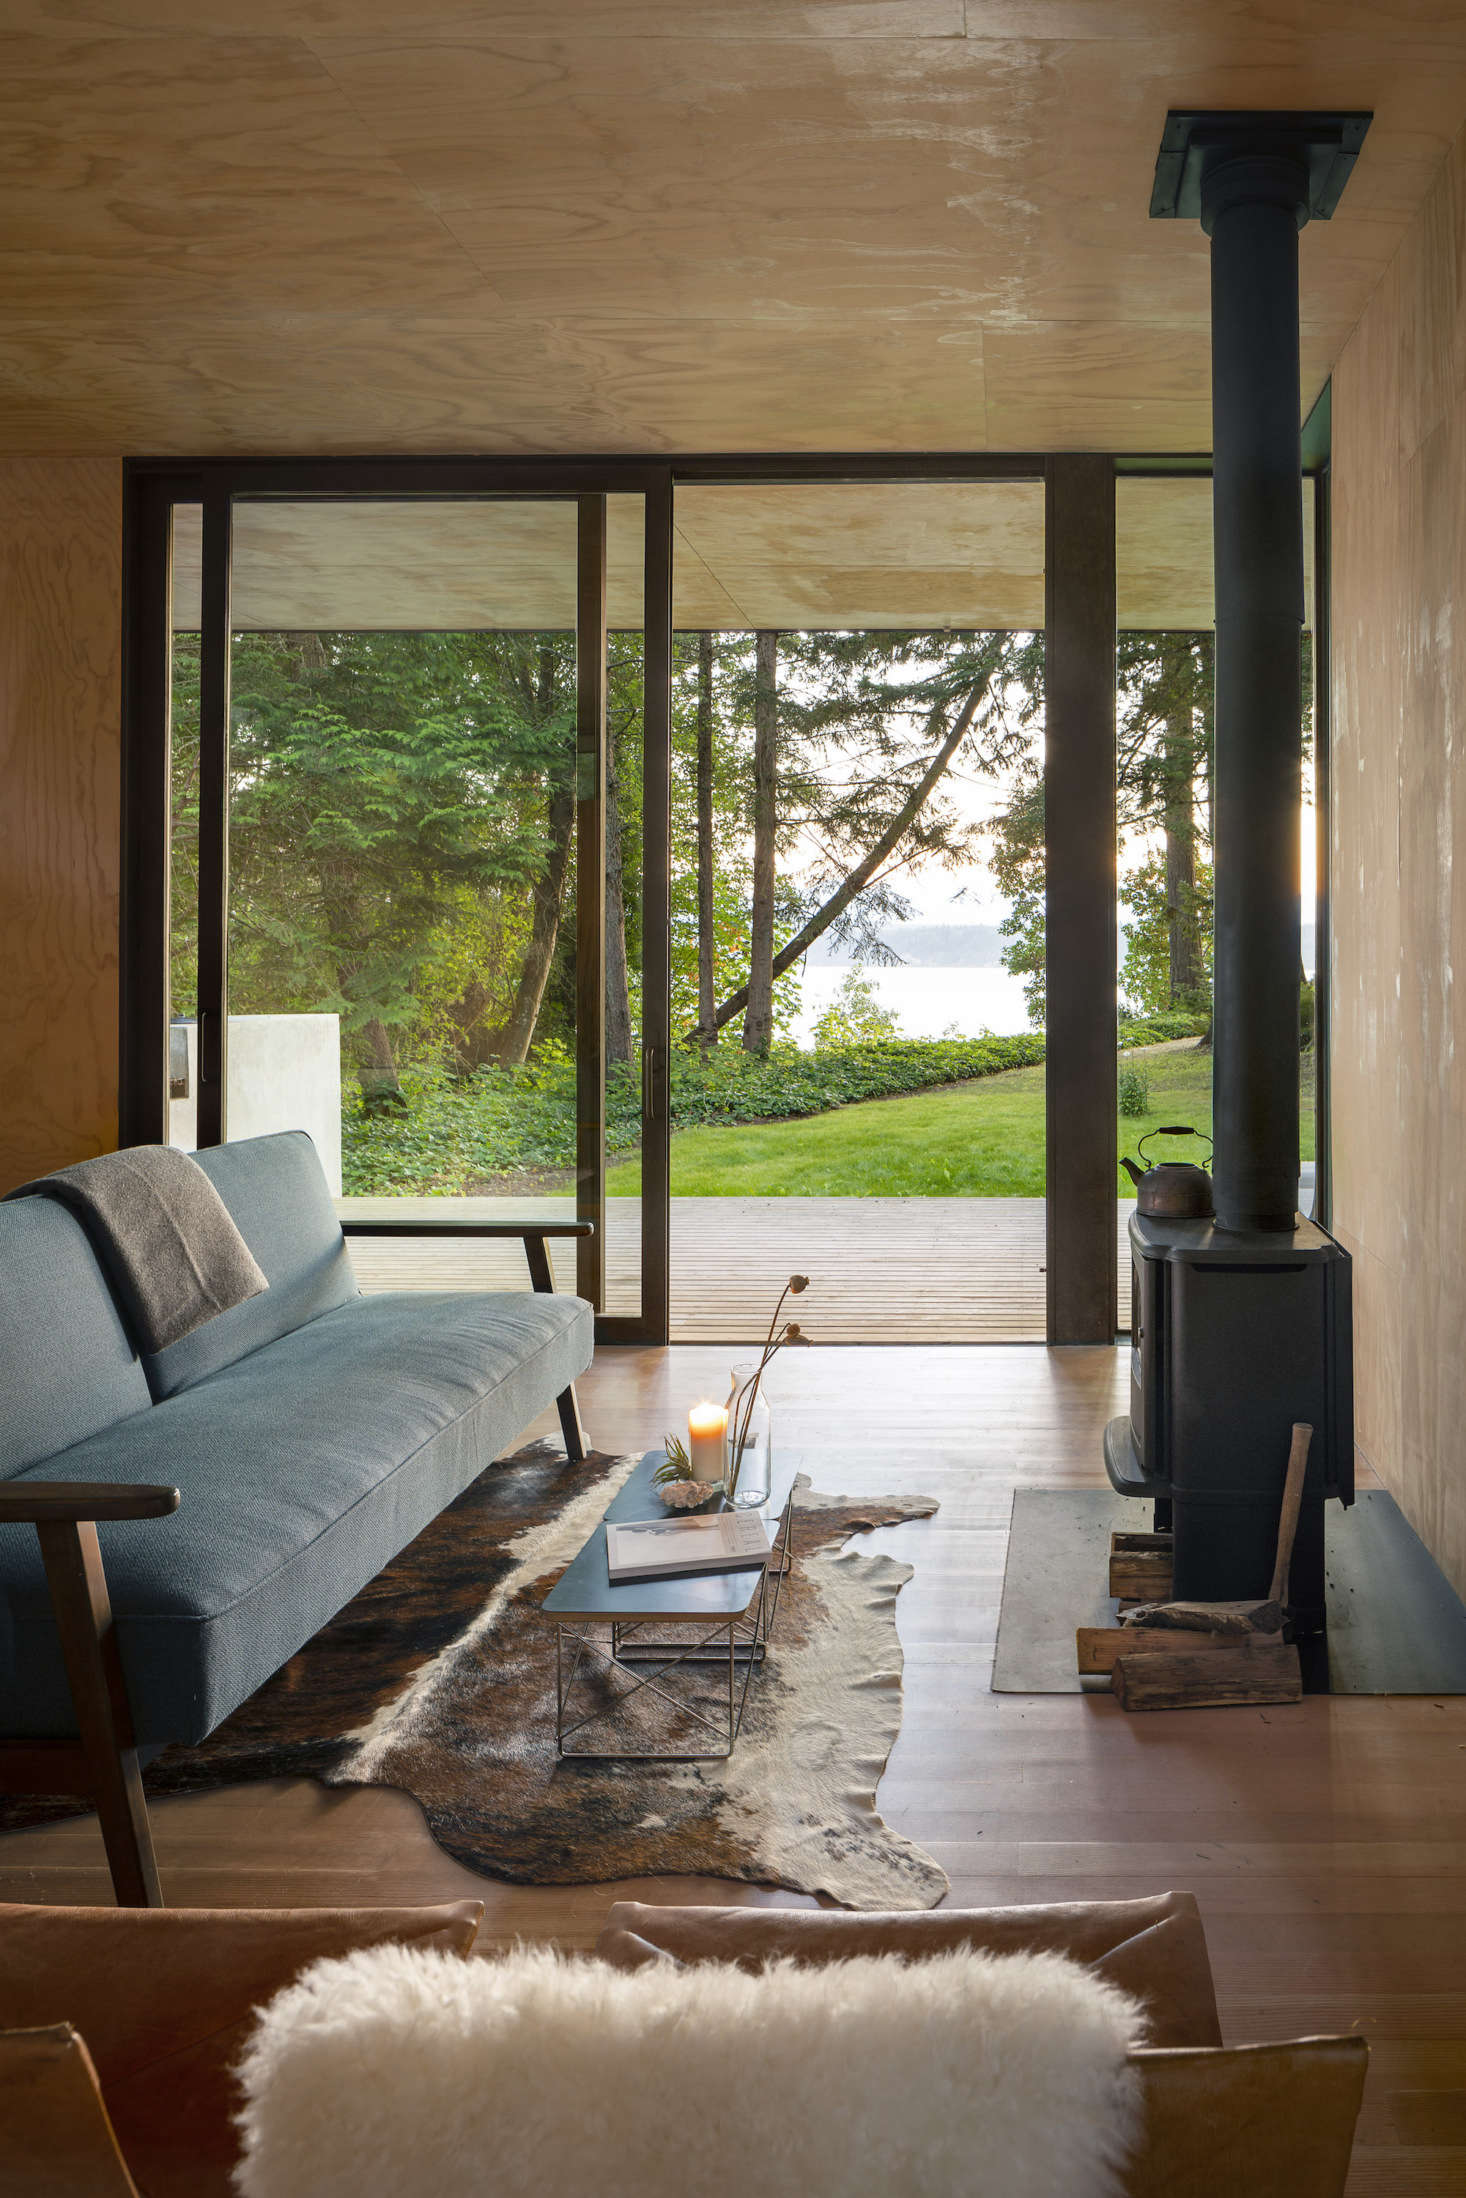 Mid-century furniture throughout reinforces simple, clean lines. The wood-burning stove is from Danish company Morsø; model 3440 is designed to be environmentally friendly. Ten-foot-high glass doors by Lindal ensure unimpeded views of the canal.